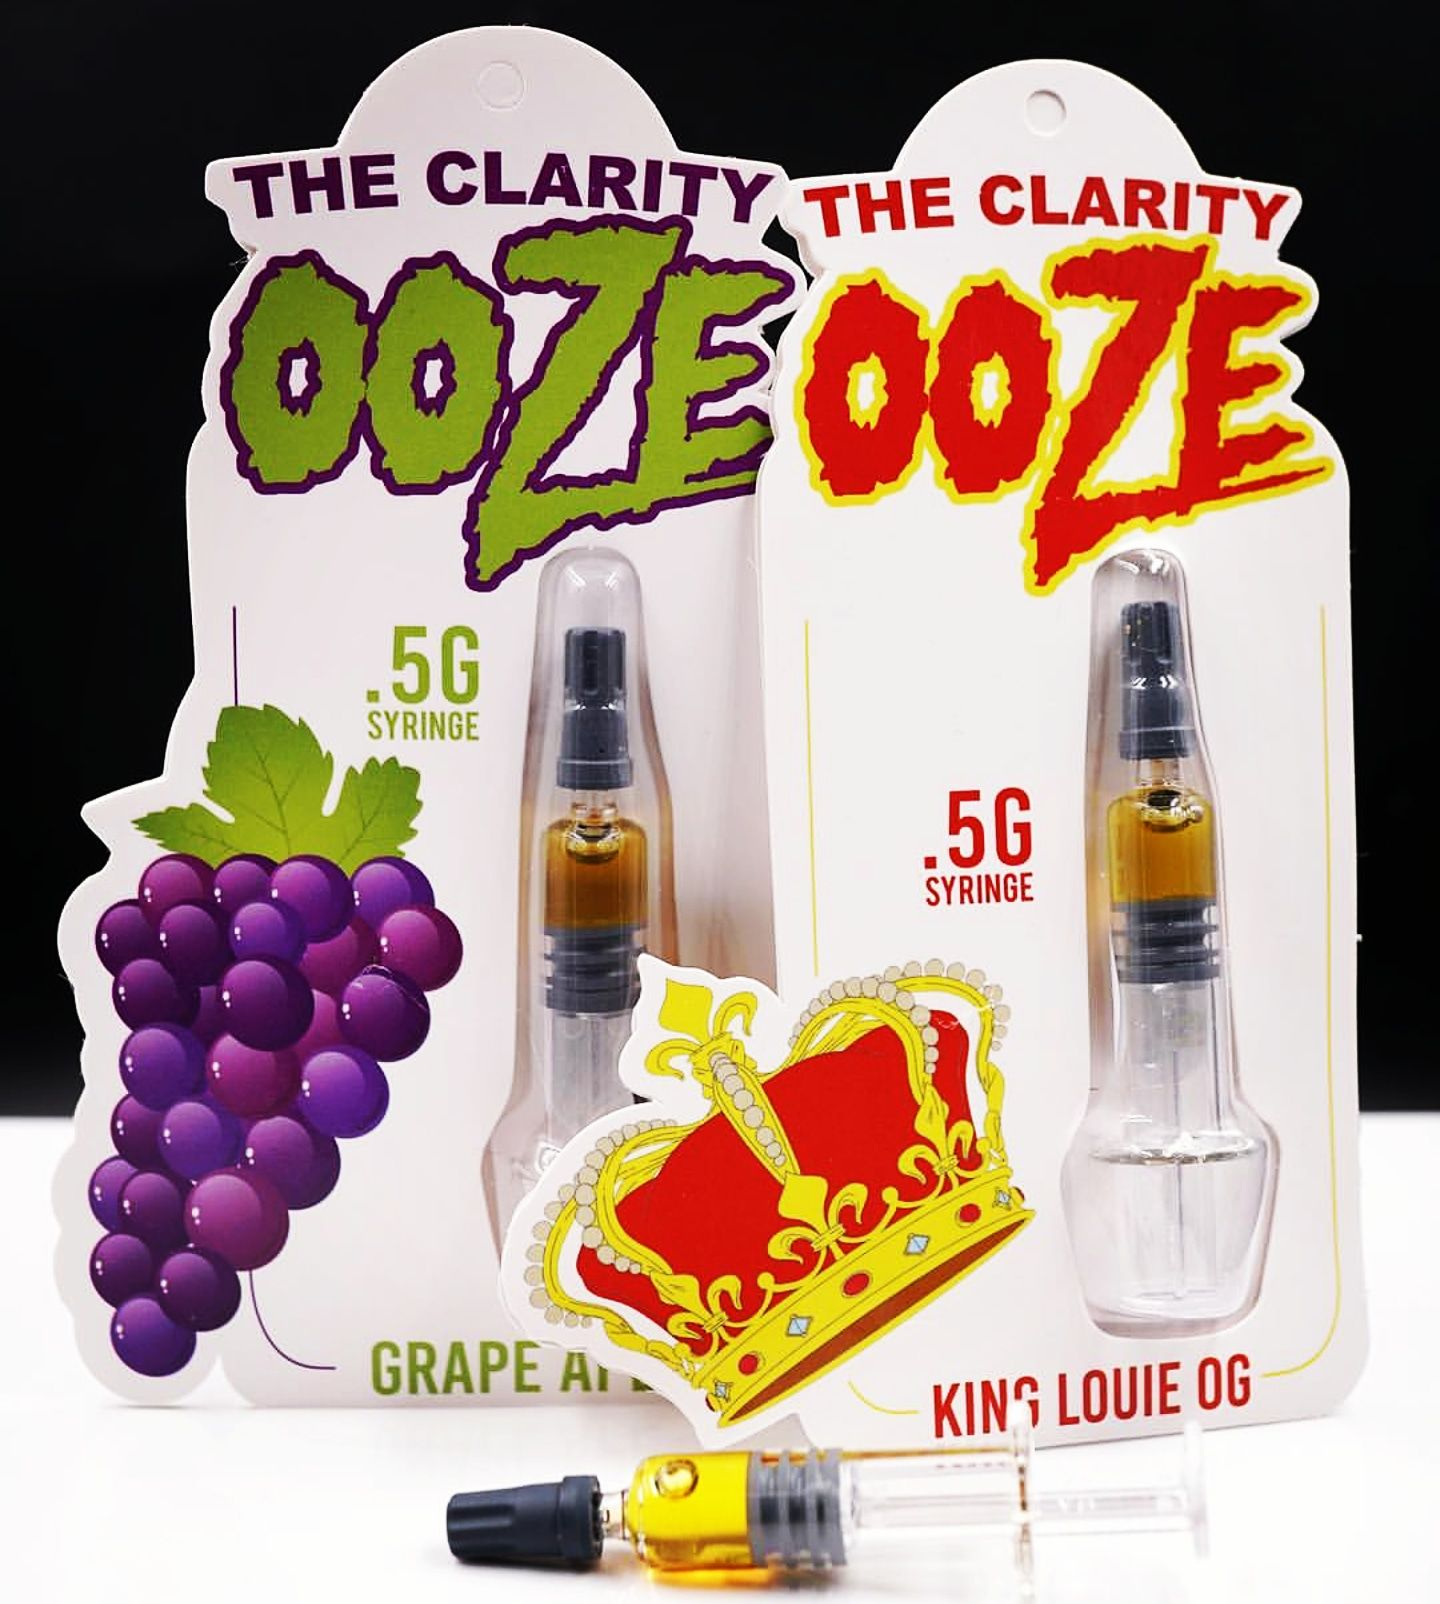 The Clarity Ooze Green Apple